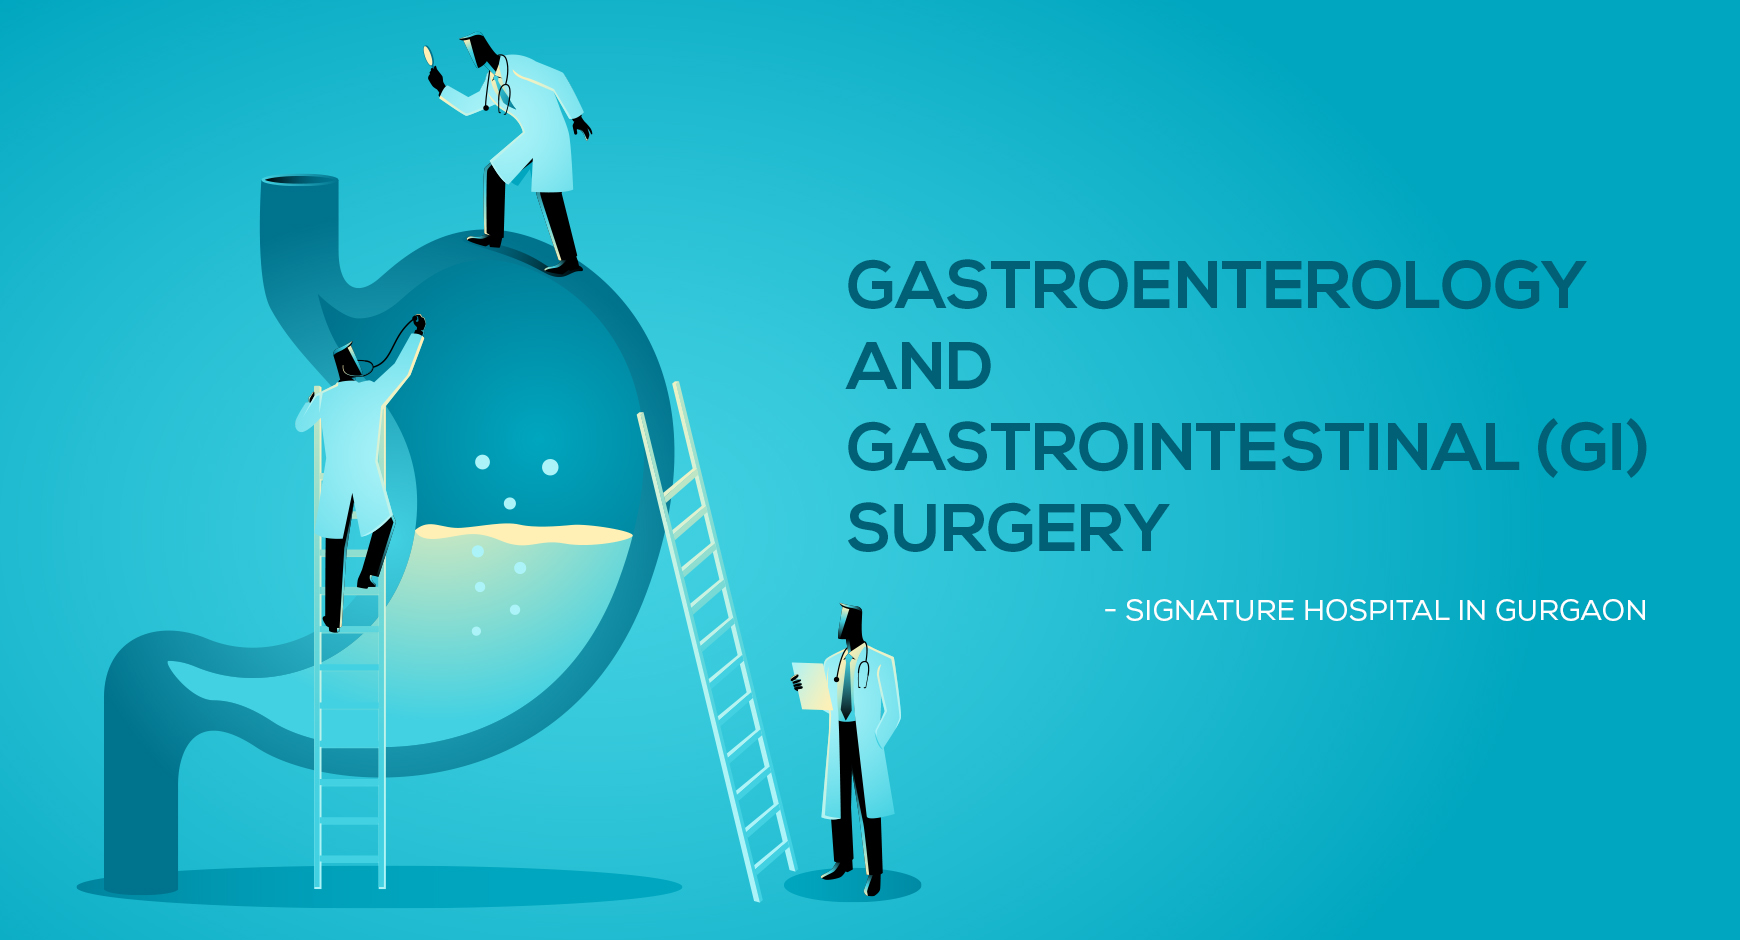 Gastroenterology & Gastrointestinal (GI) Surgery in Gurgaon